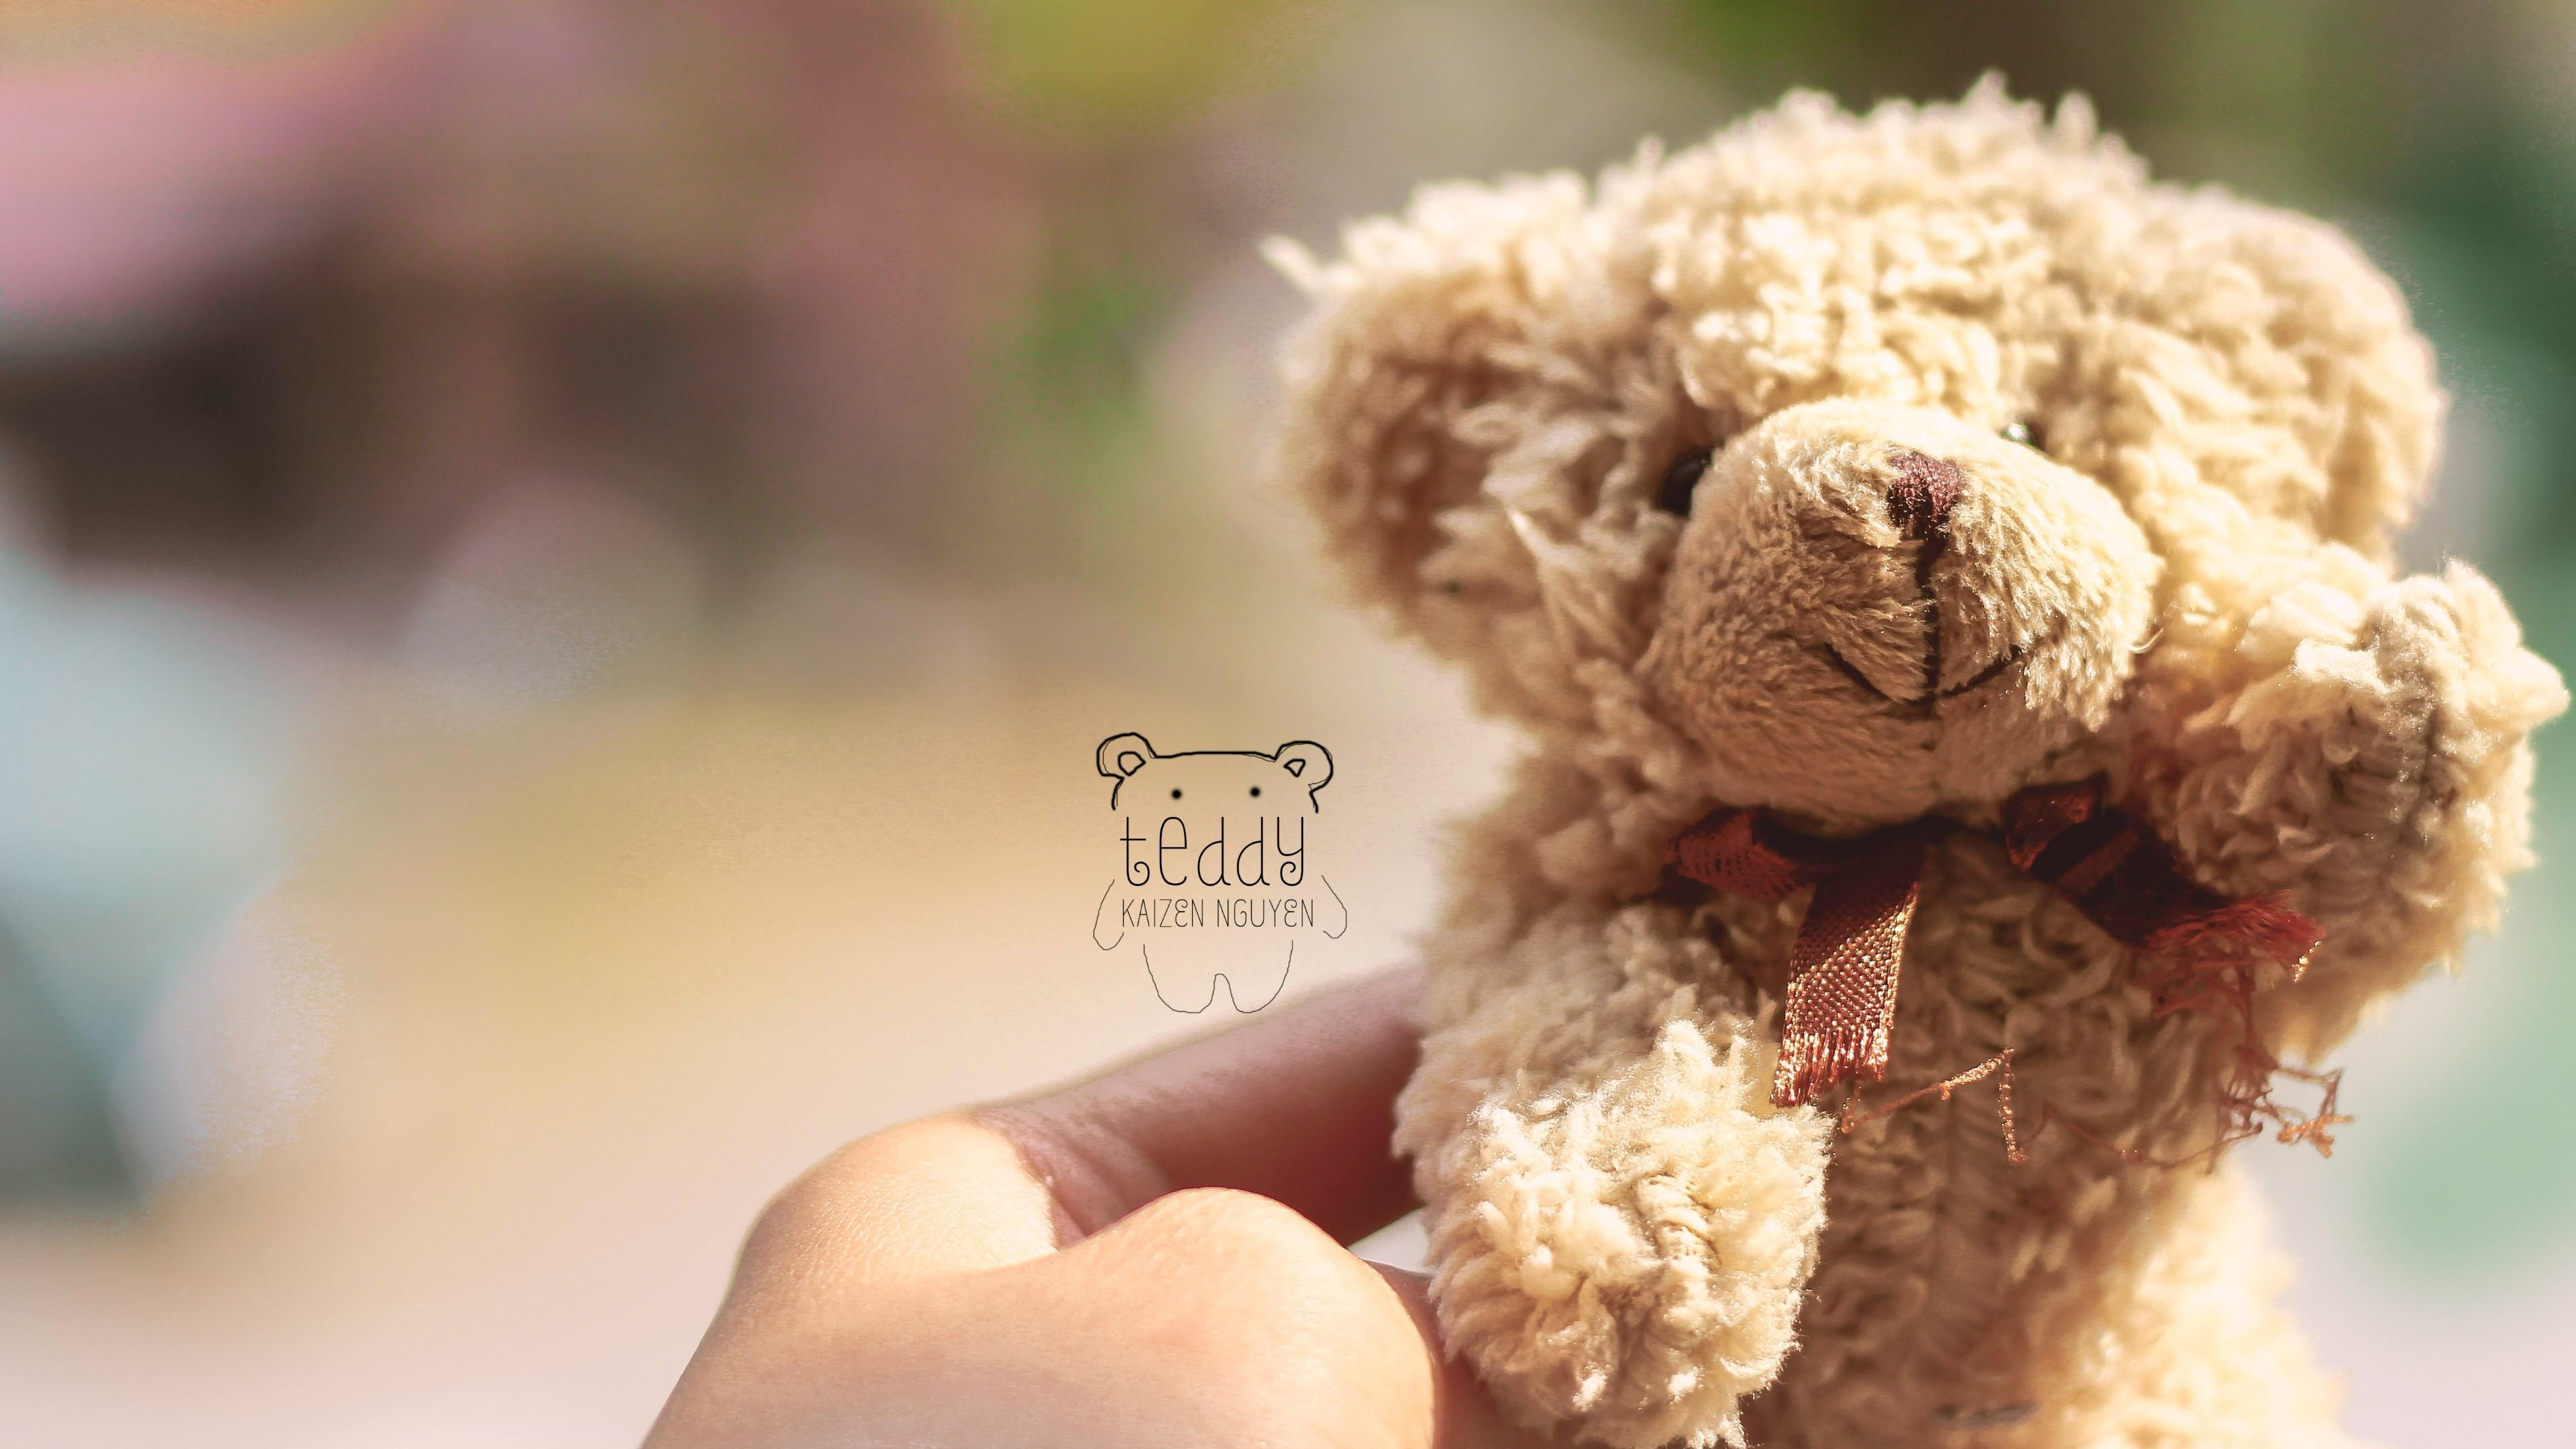 teddy bear uhd desktop wallpapers